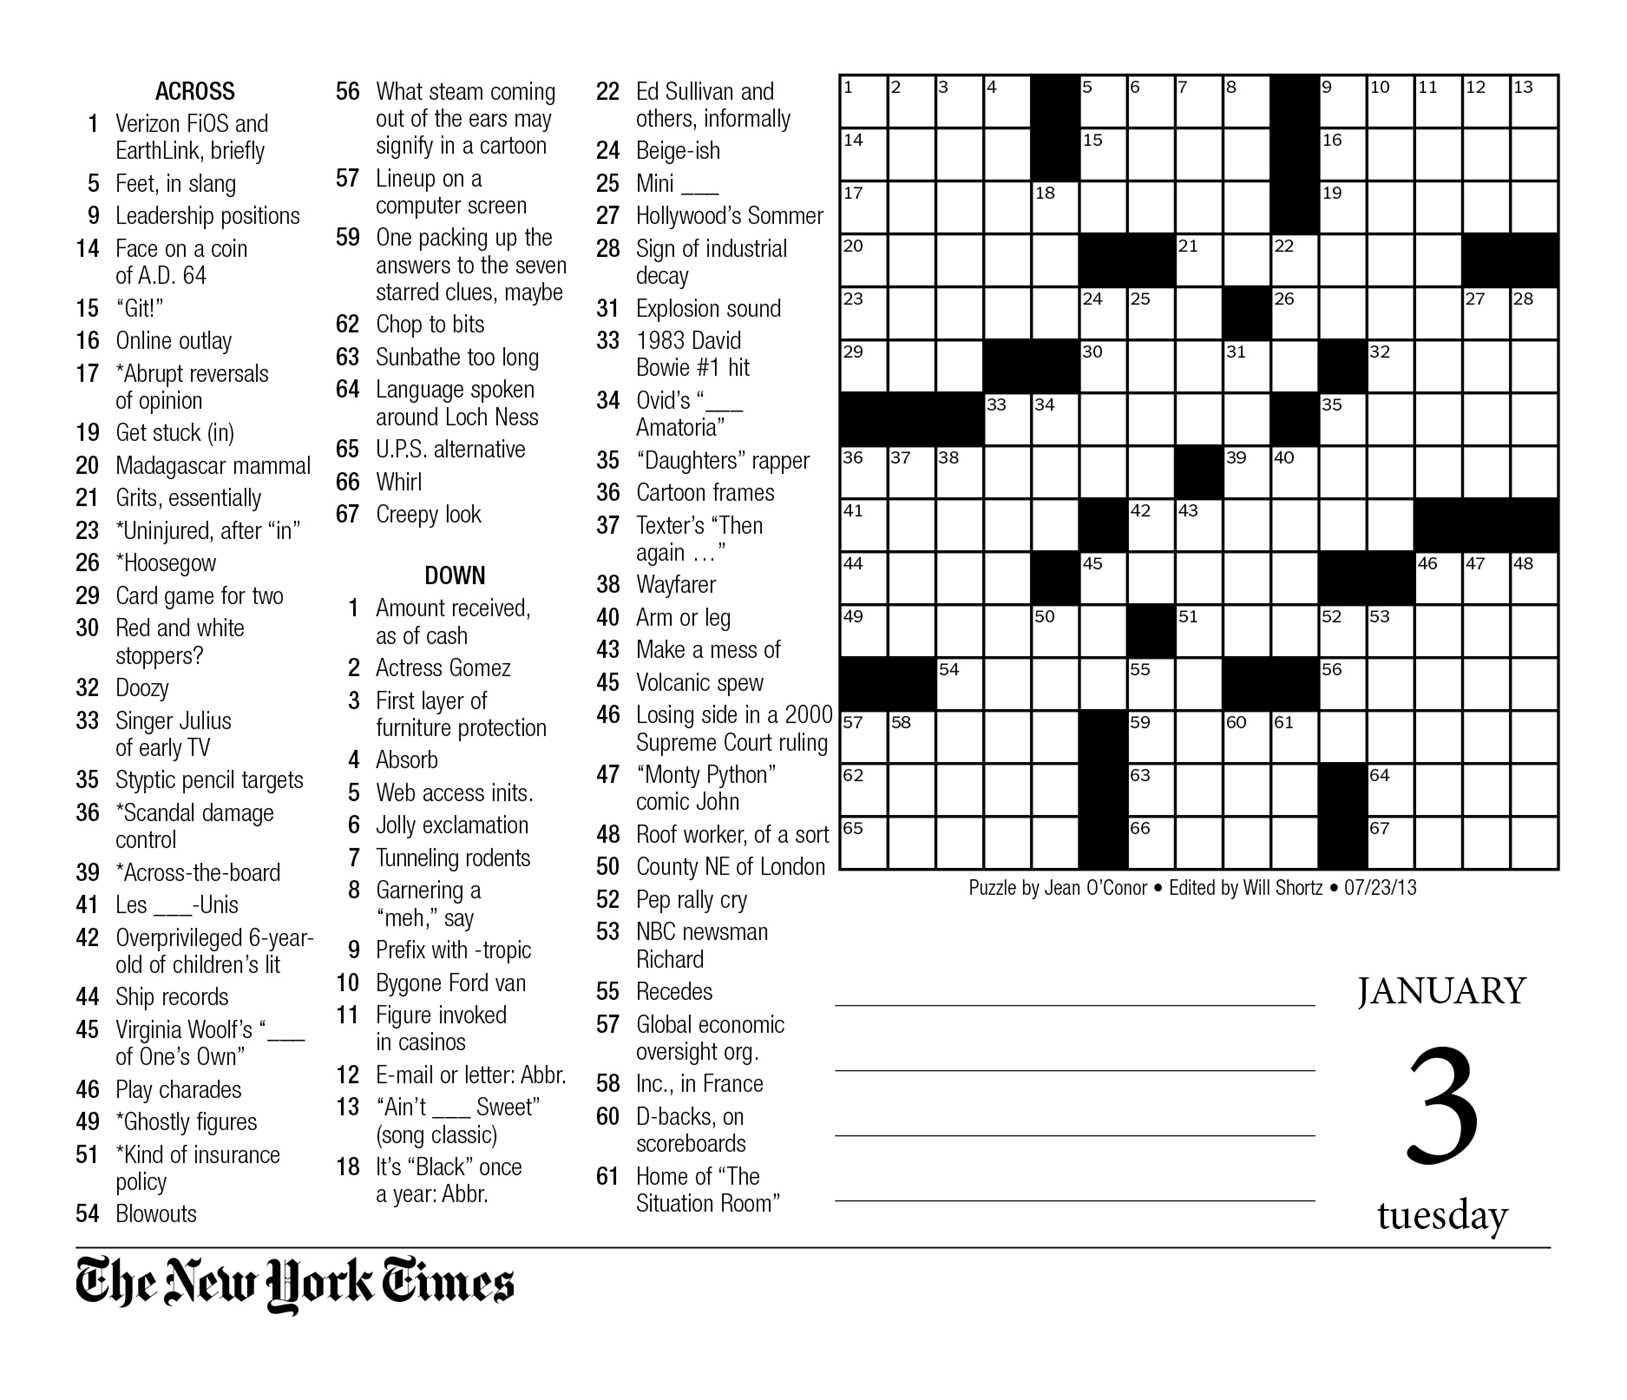 Play Free Crossword Puzzles From The Washington Post - The - Free - Printable Sunday Crossword Washington Post